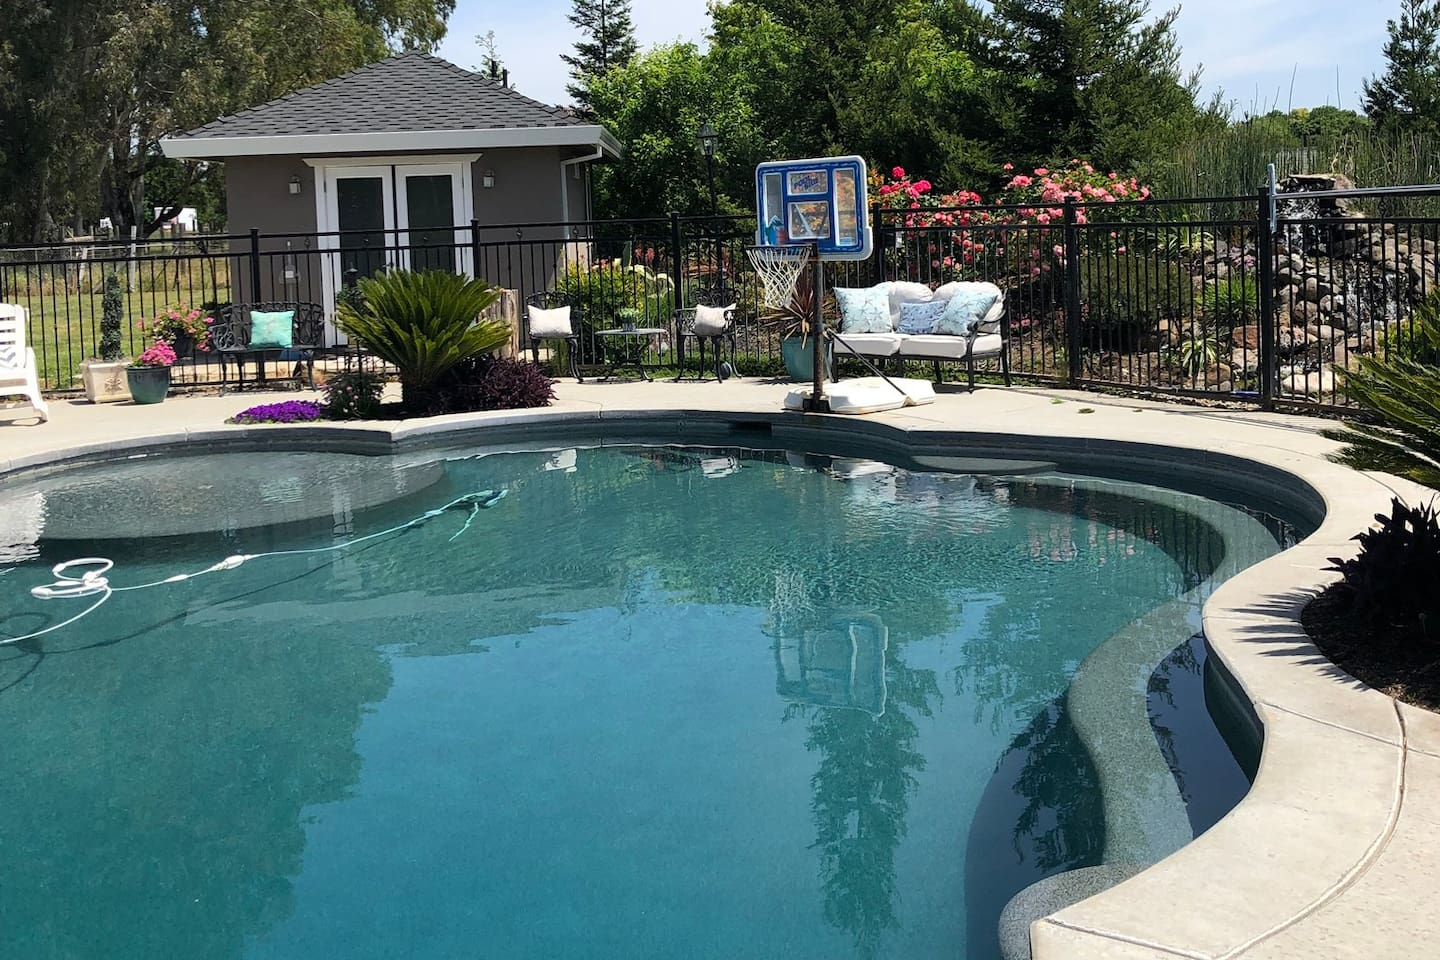 Take a dip in the cool pool (heated in the summer), play a game of pool basketball, lounge on the pool chairs and enjoy a wonderful California summer afternoon in the landscaped expansive backyard.